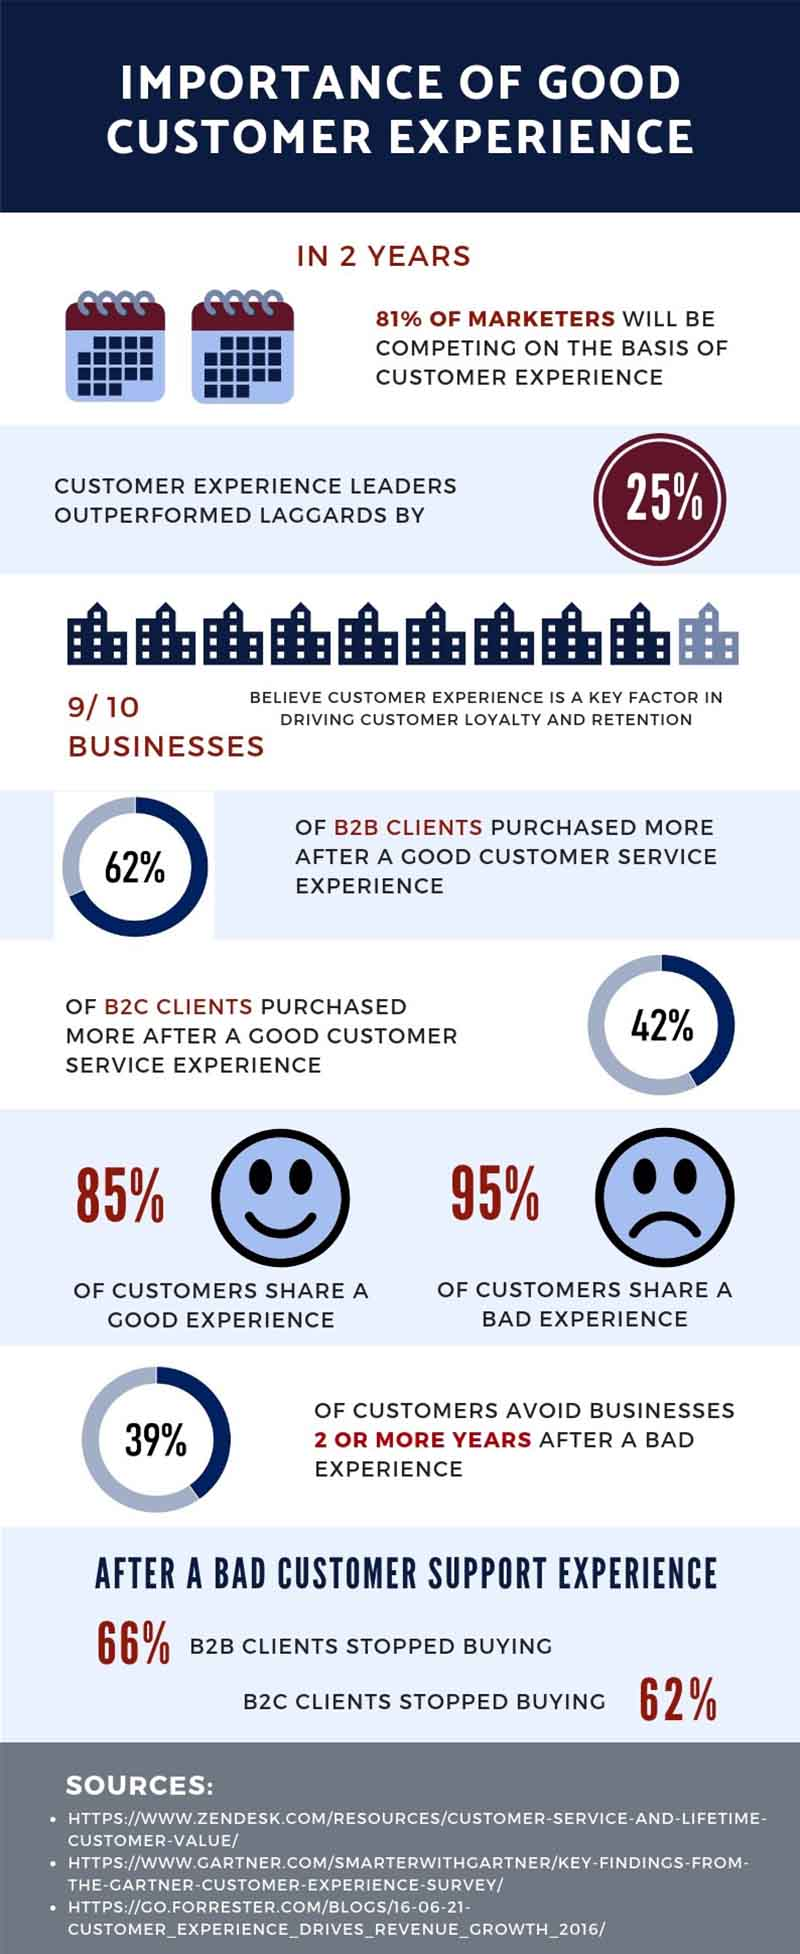 Importance of Good Customer Service - Inbound Call Center Solution